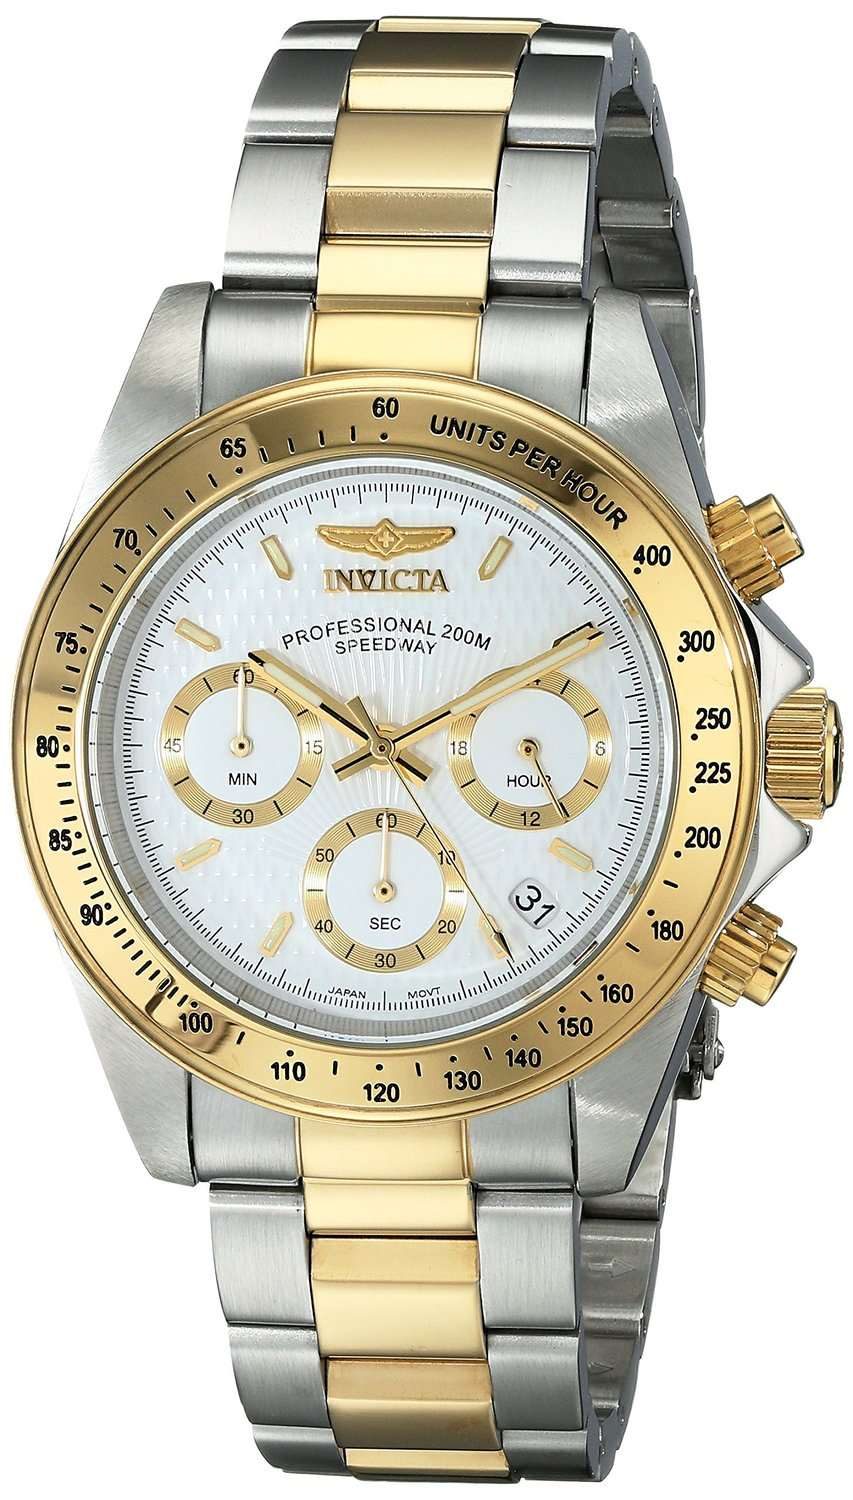 Invicta Men's 9212 Watch